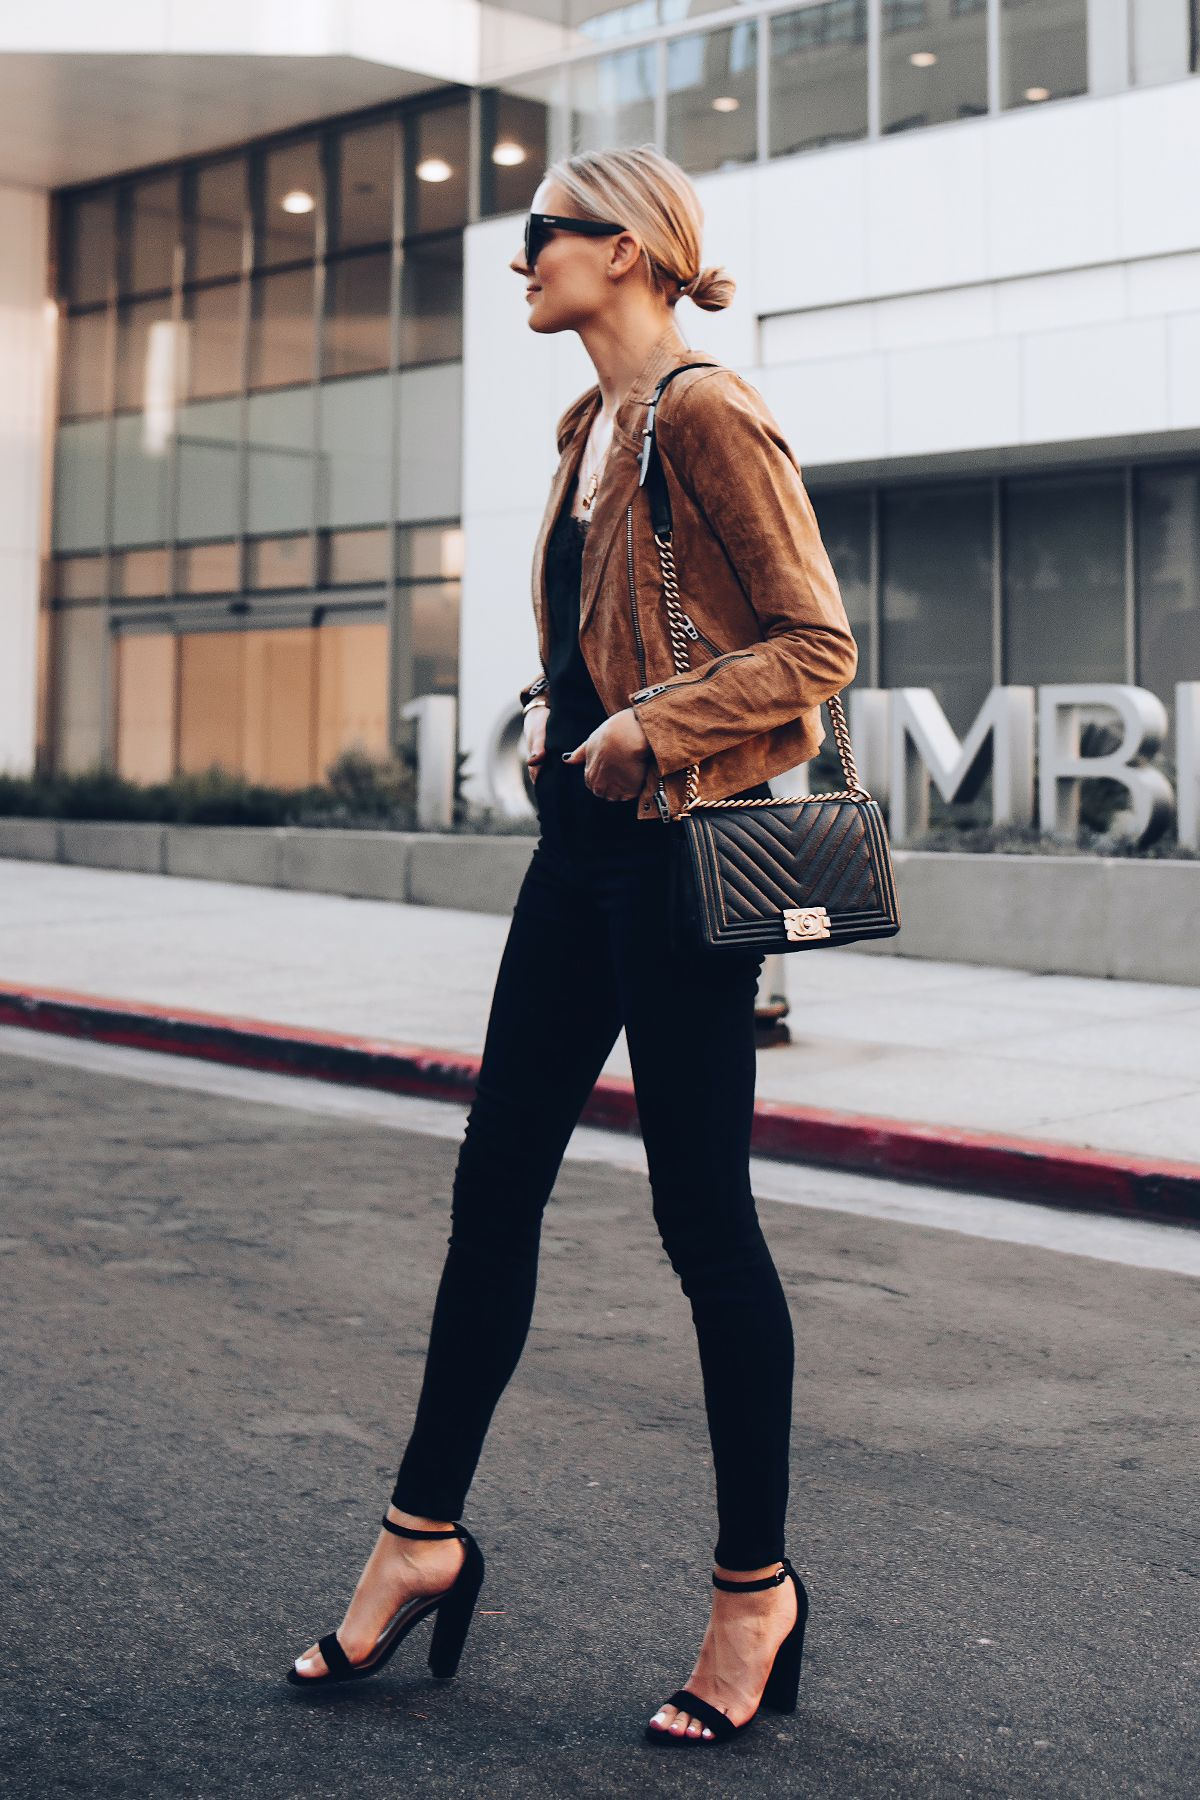 ea23fa4a227 Blonde Woman Wearing Blanknyc Tan Suede Moto Jacket Black Lace Cami  Everlane Black Skinny Jeans Outfit Black Ankle Strap Heeled Sandals Chanel  Black Boy Bag ...